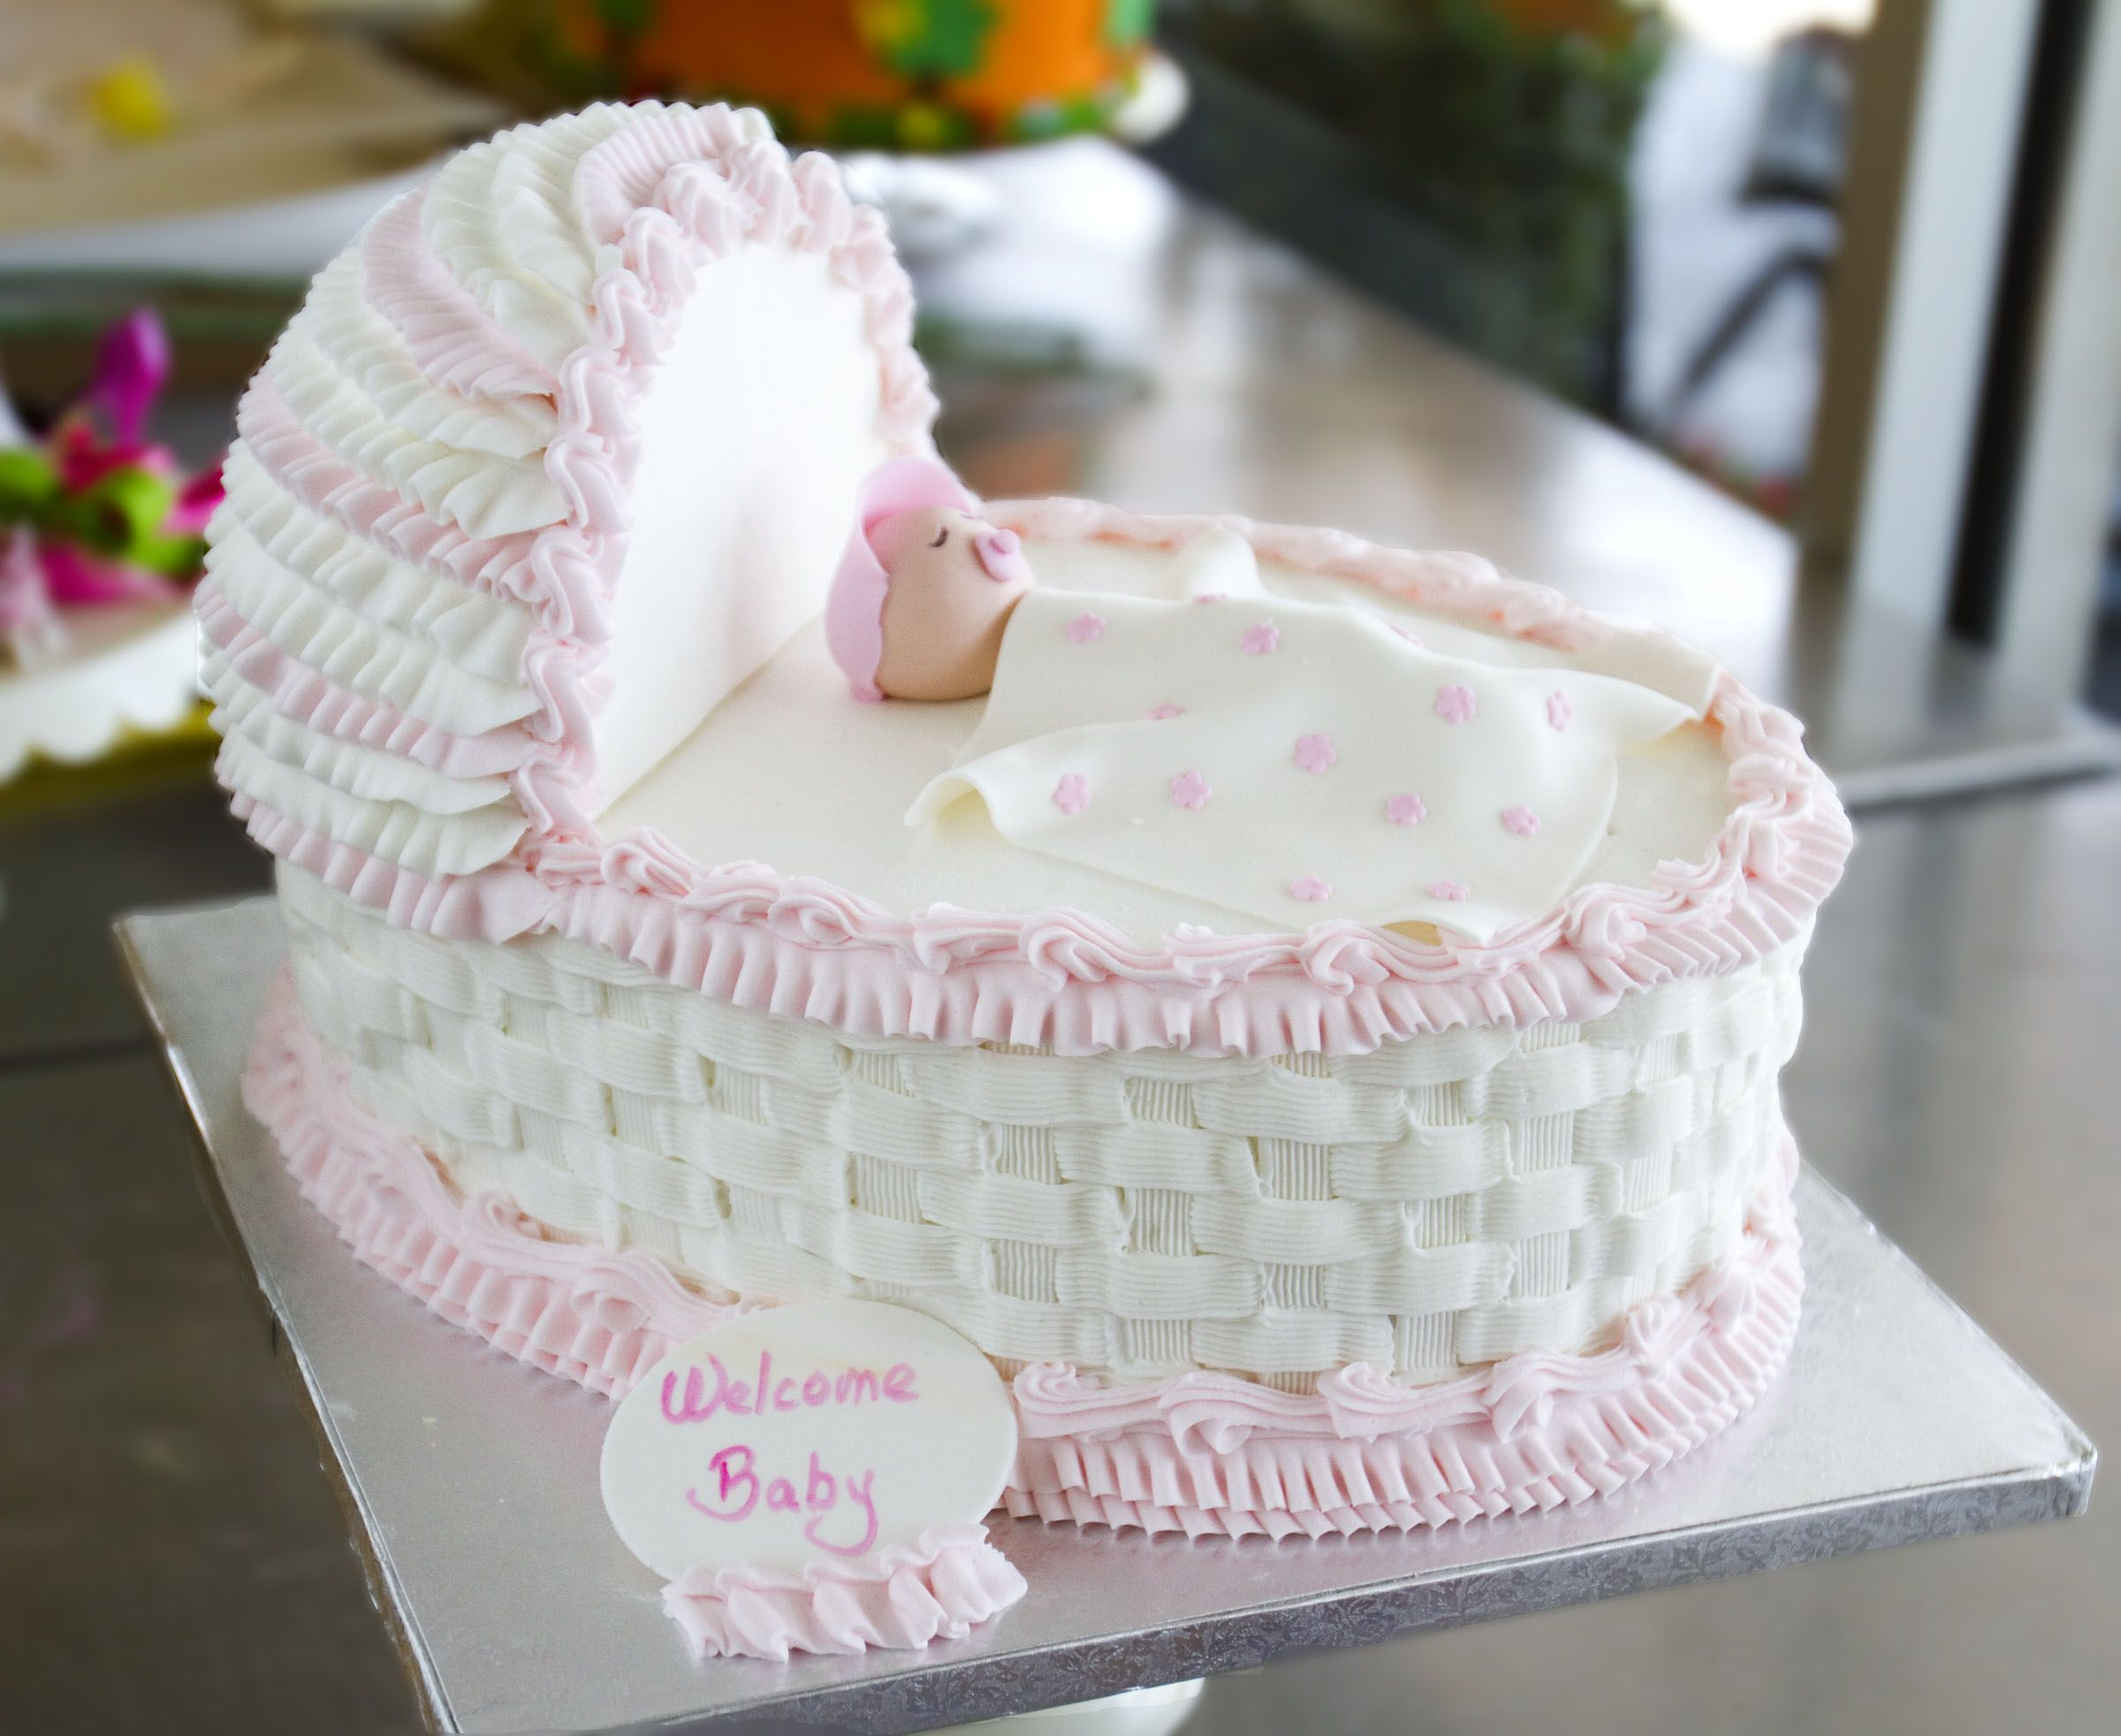 This bassinet cake is perfect for a baby shower Cake 007